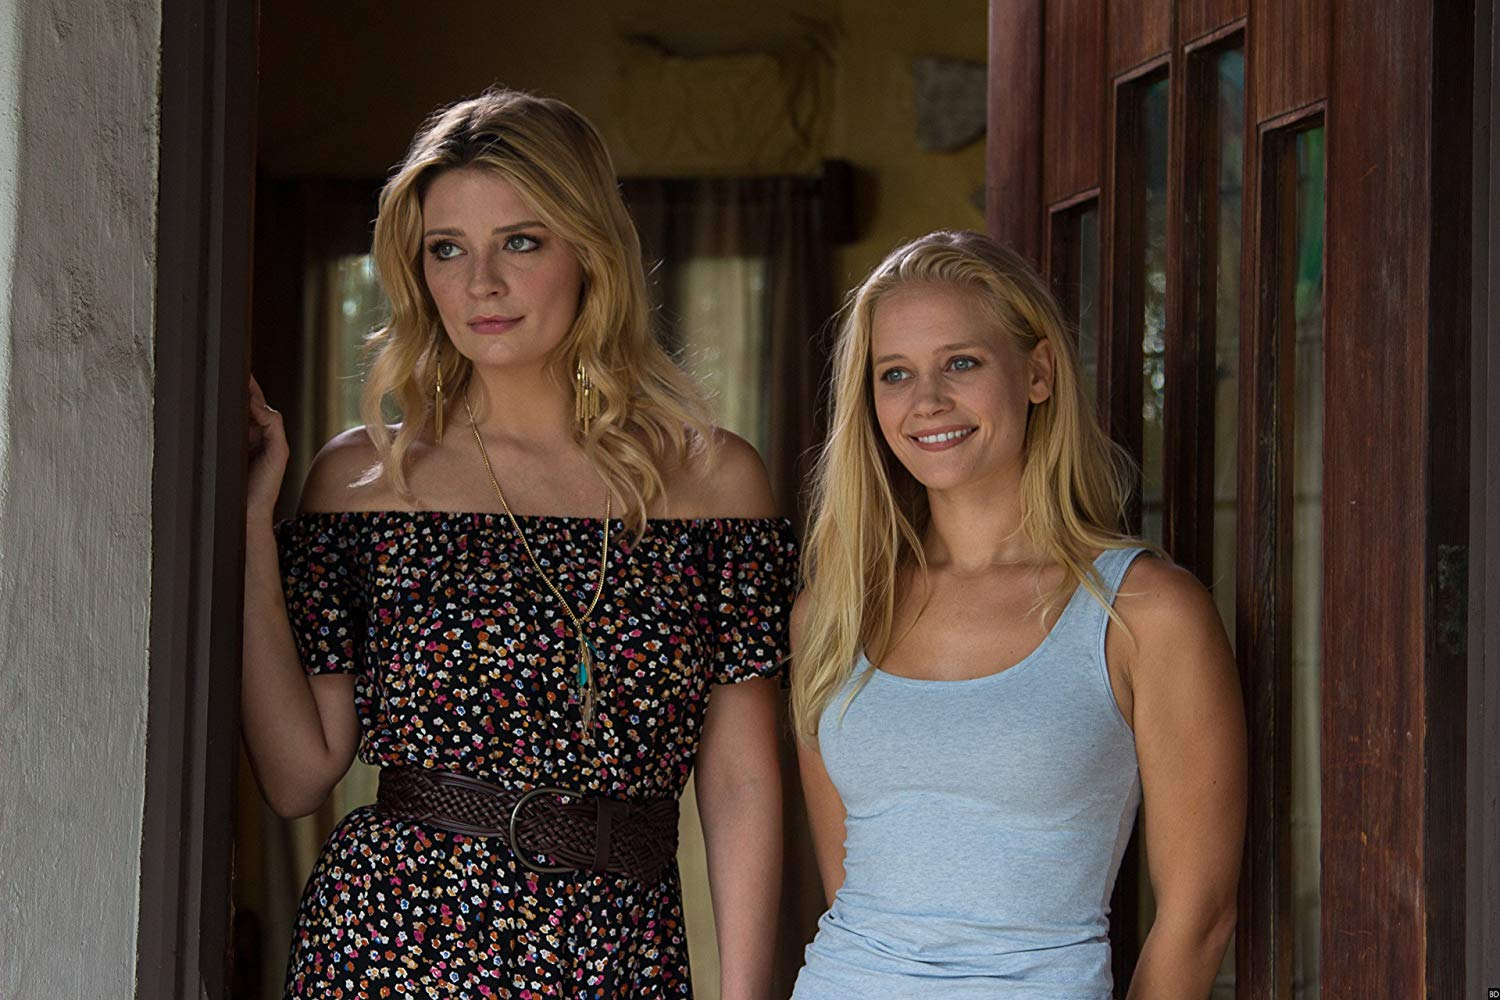 Mischa Barton and Carly Schroeder in Ouija House